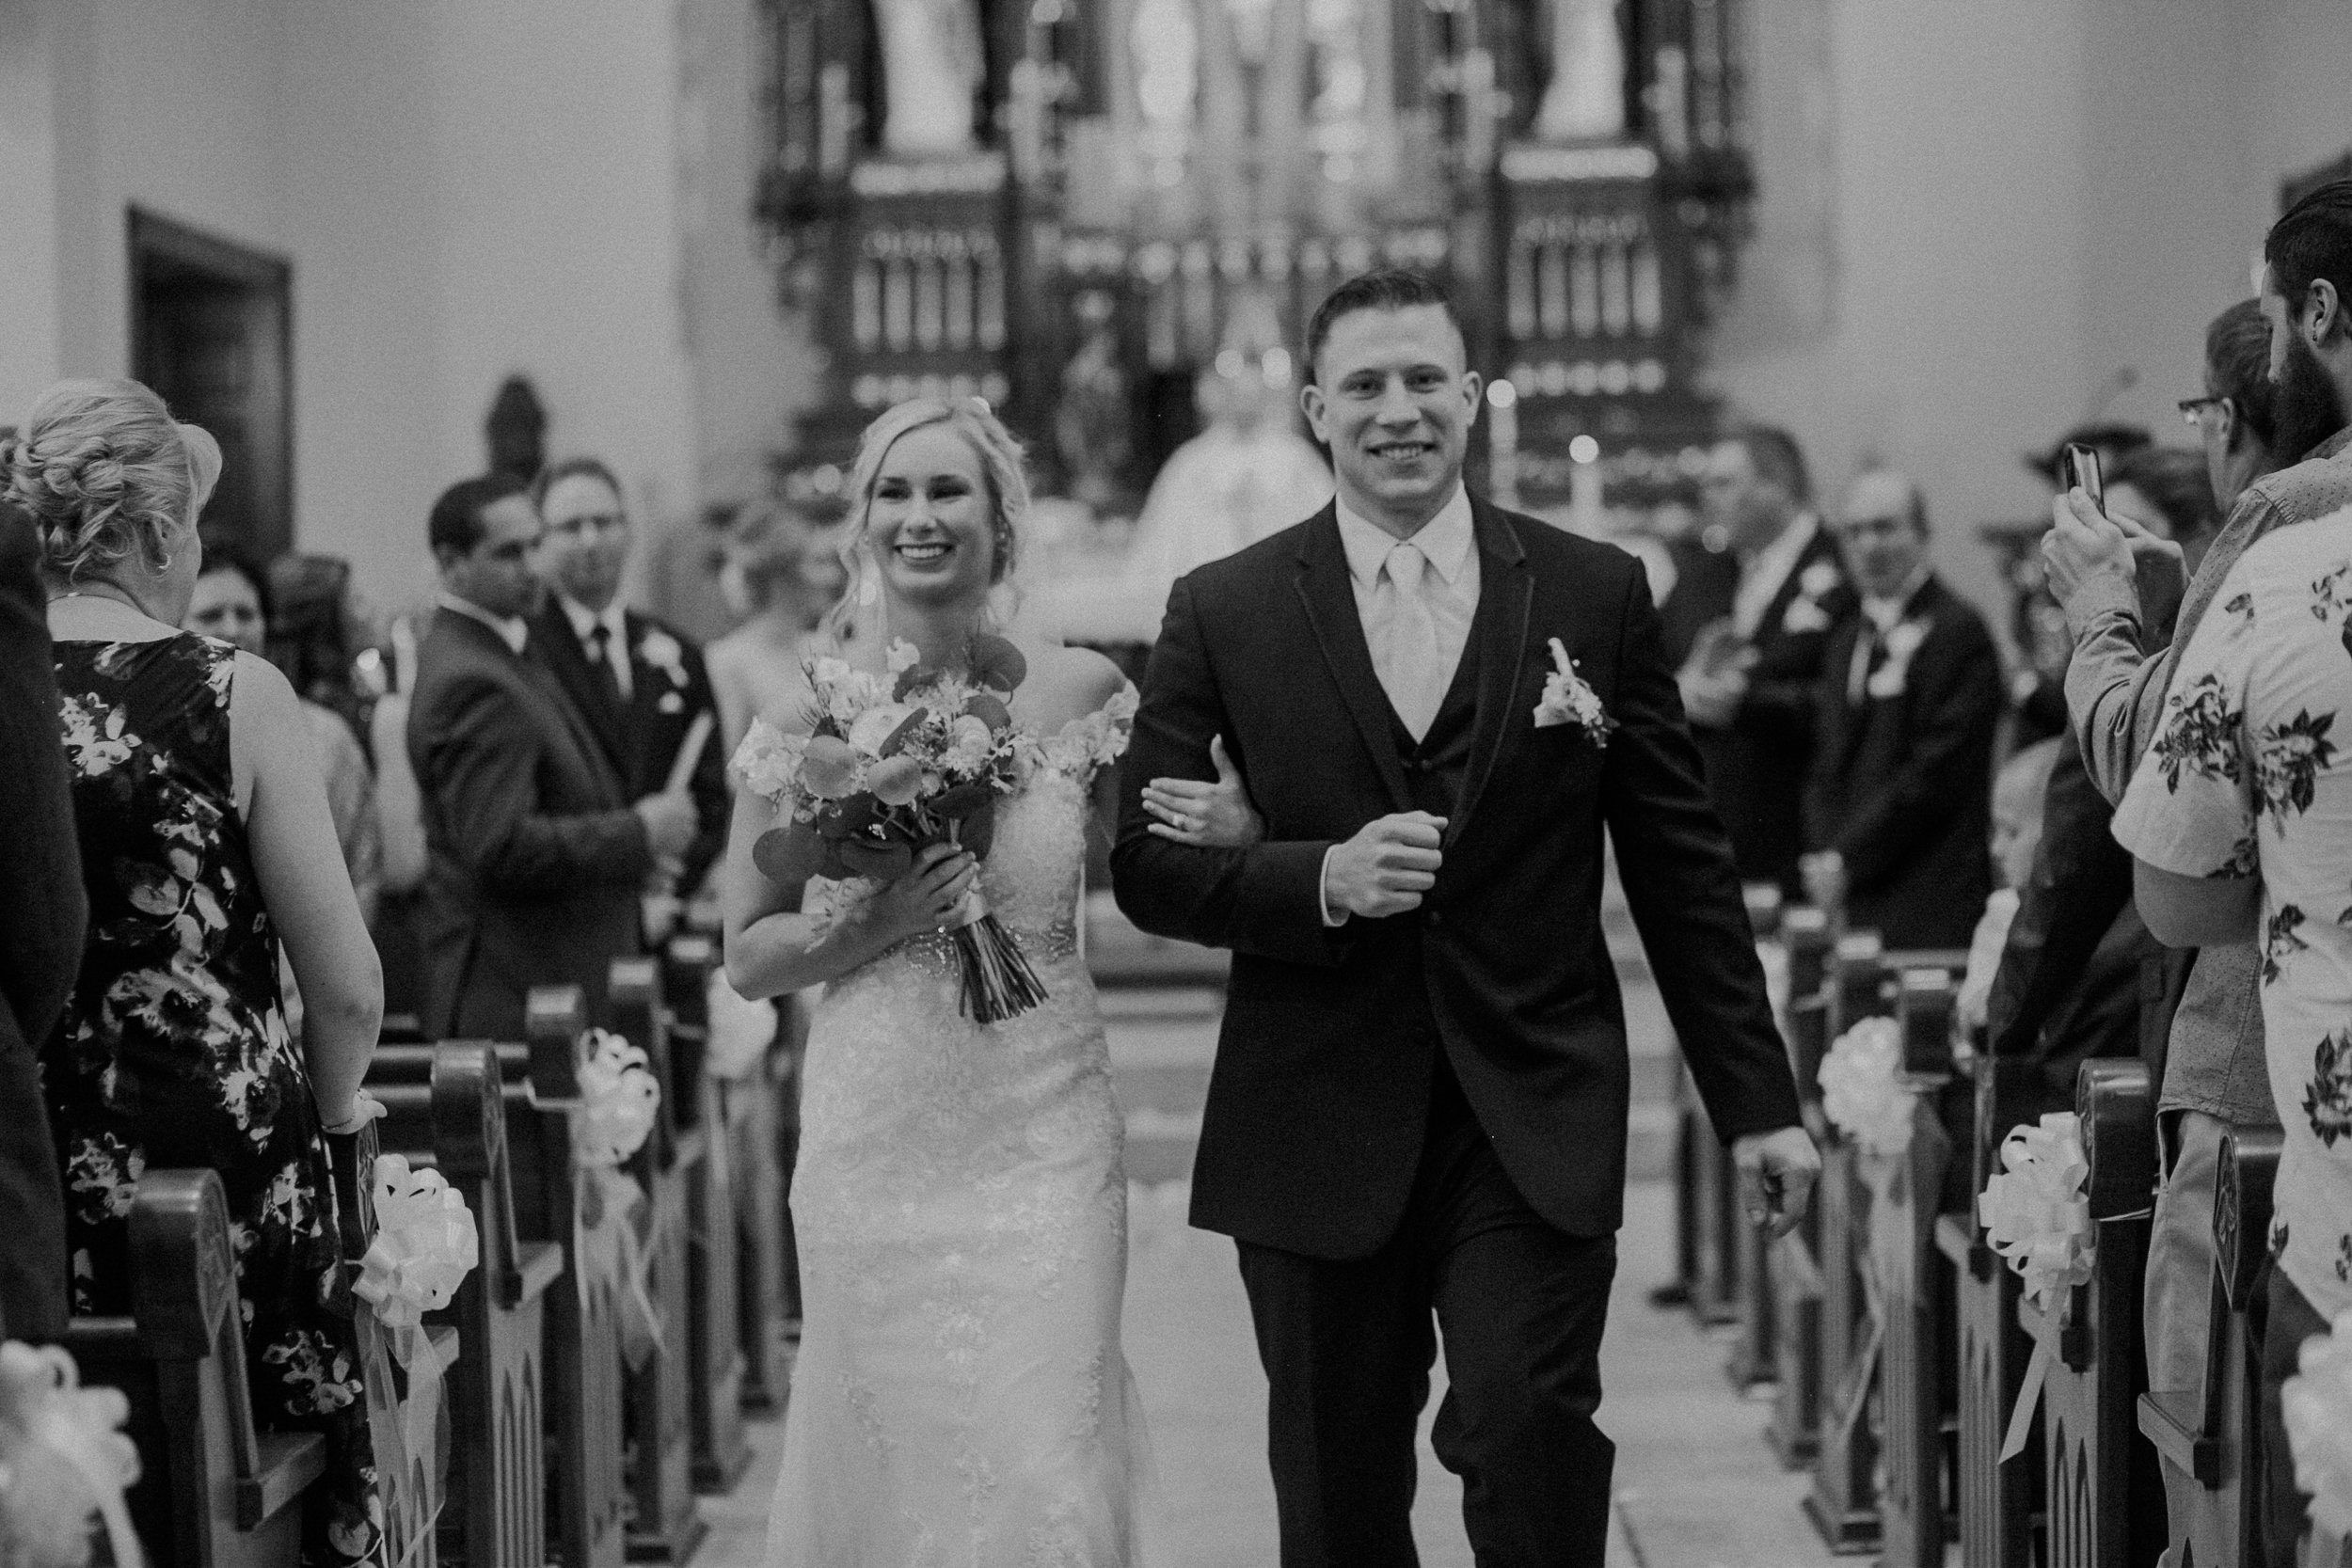 happy wedding day to Marshfield WI bride and groom photographed by Andrea Wagner in real and authentic moments